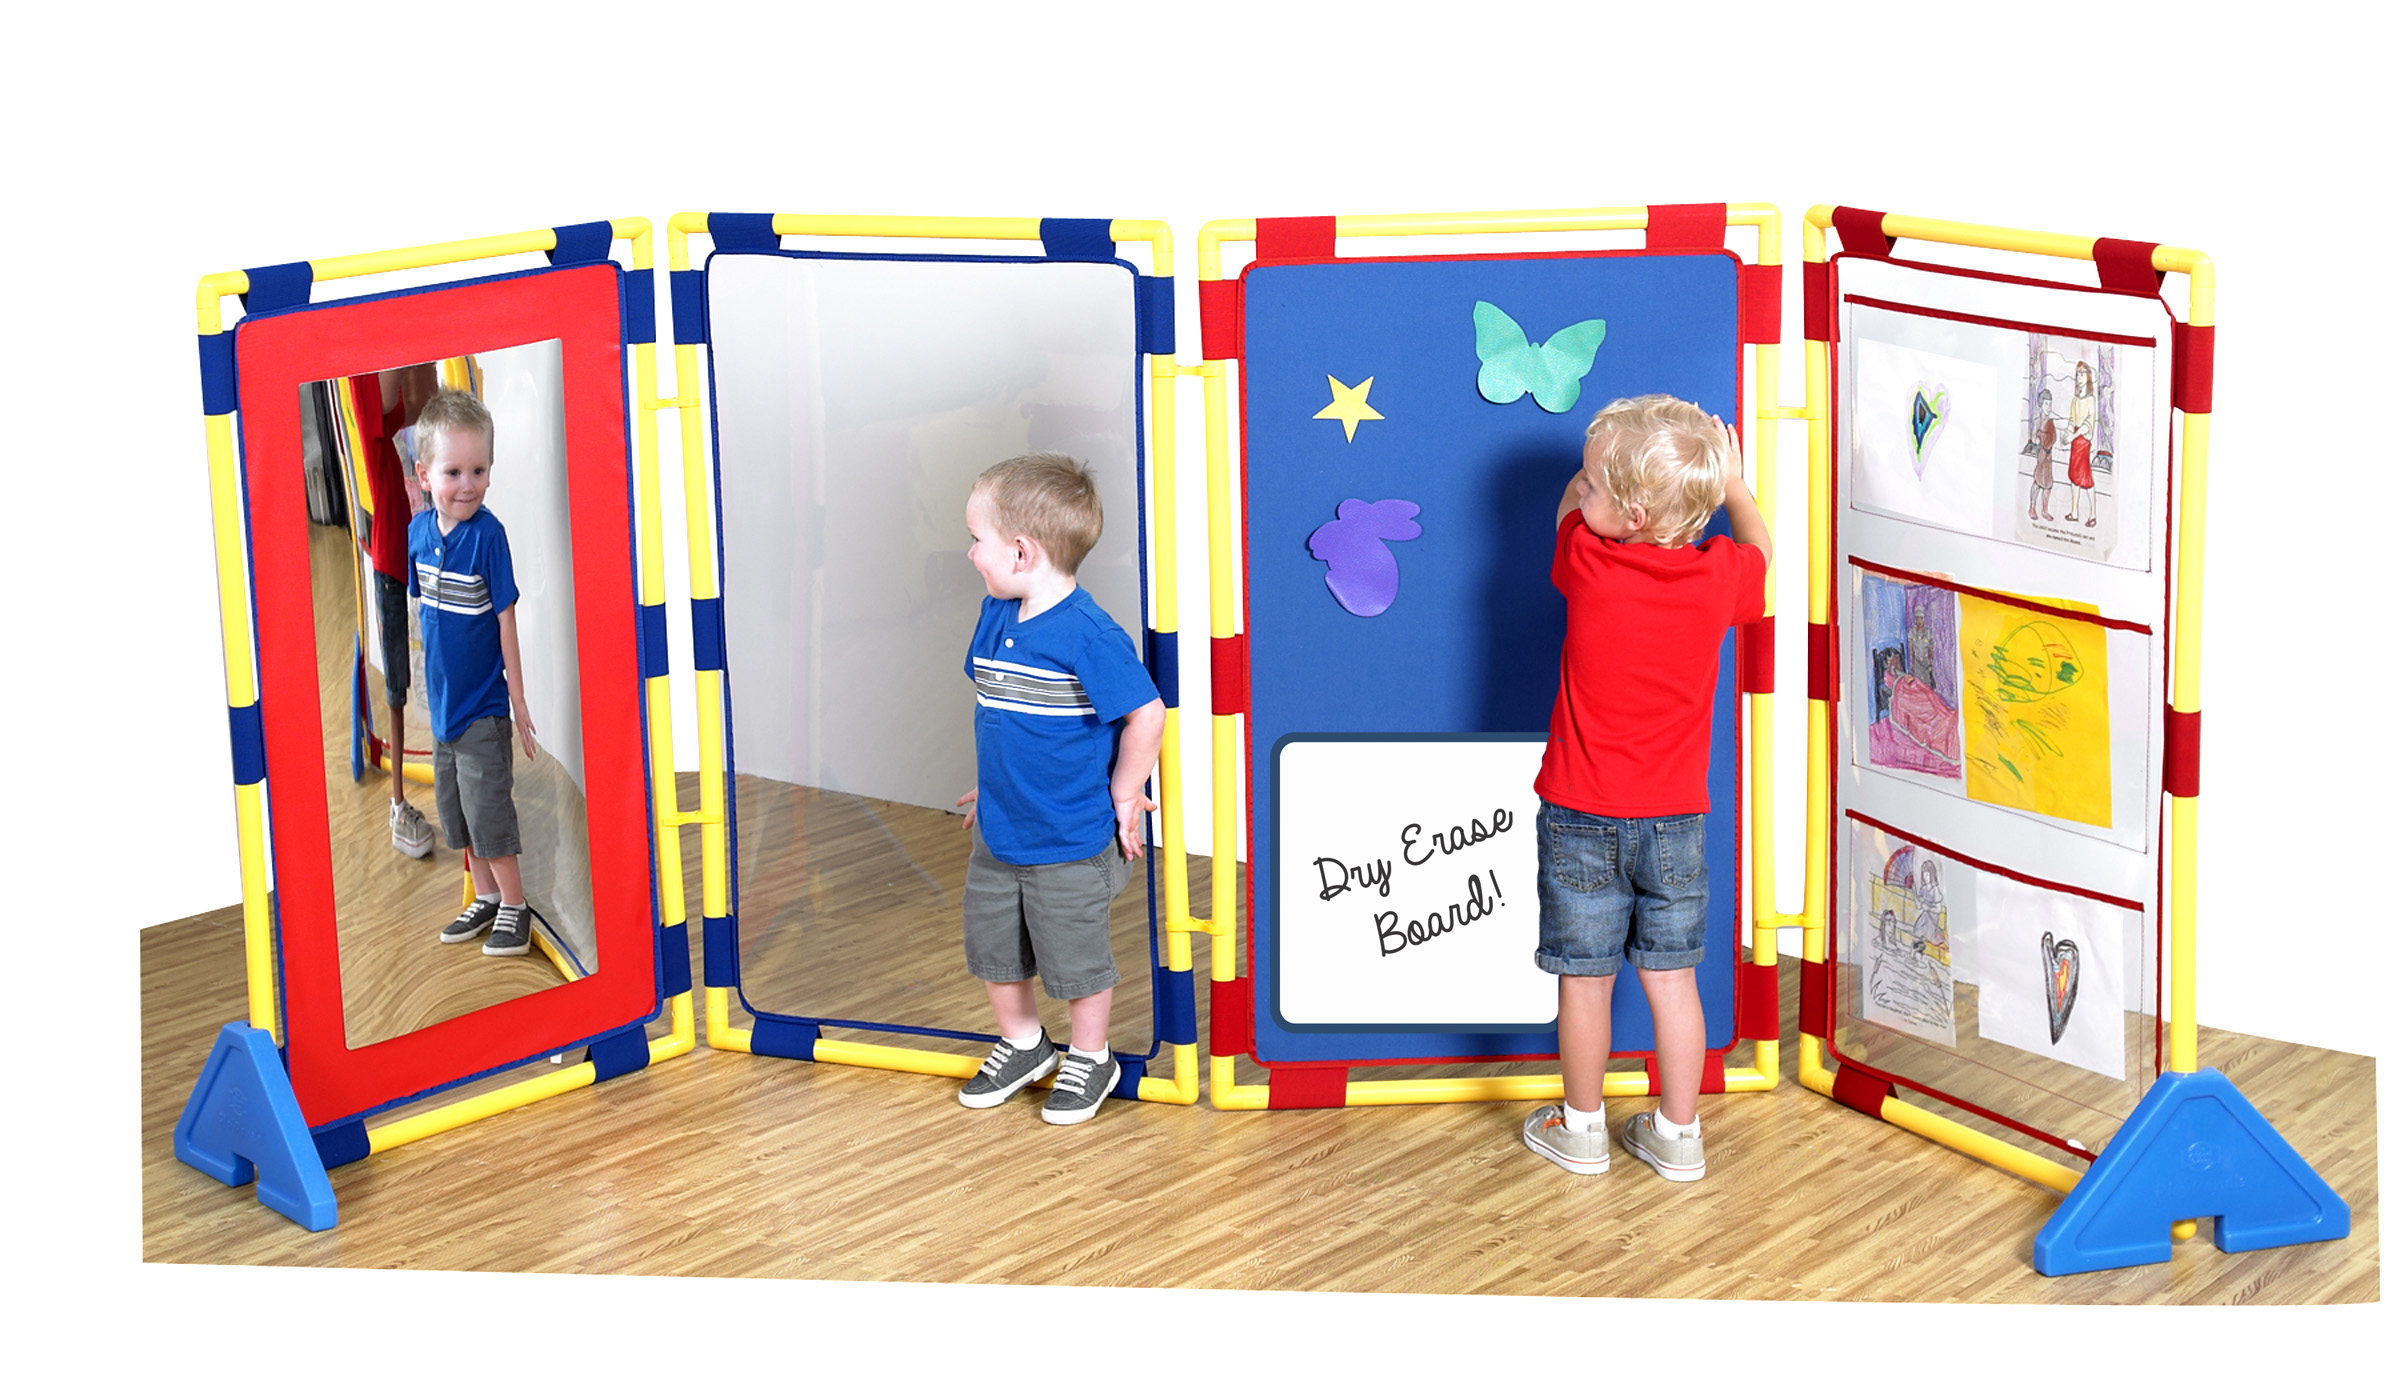 Free-Standing Screen for Daycare//Homeschool//Montessori Classroom Partitions Childrens Factory Rect PlayPanel Kids Room Divider Panel Deep Water